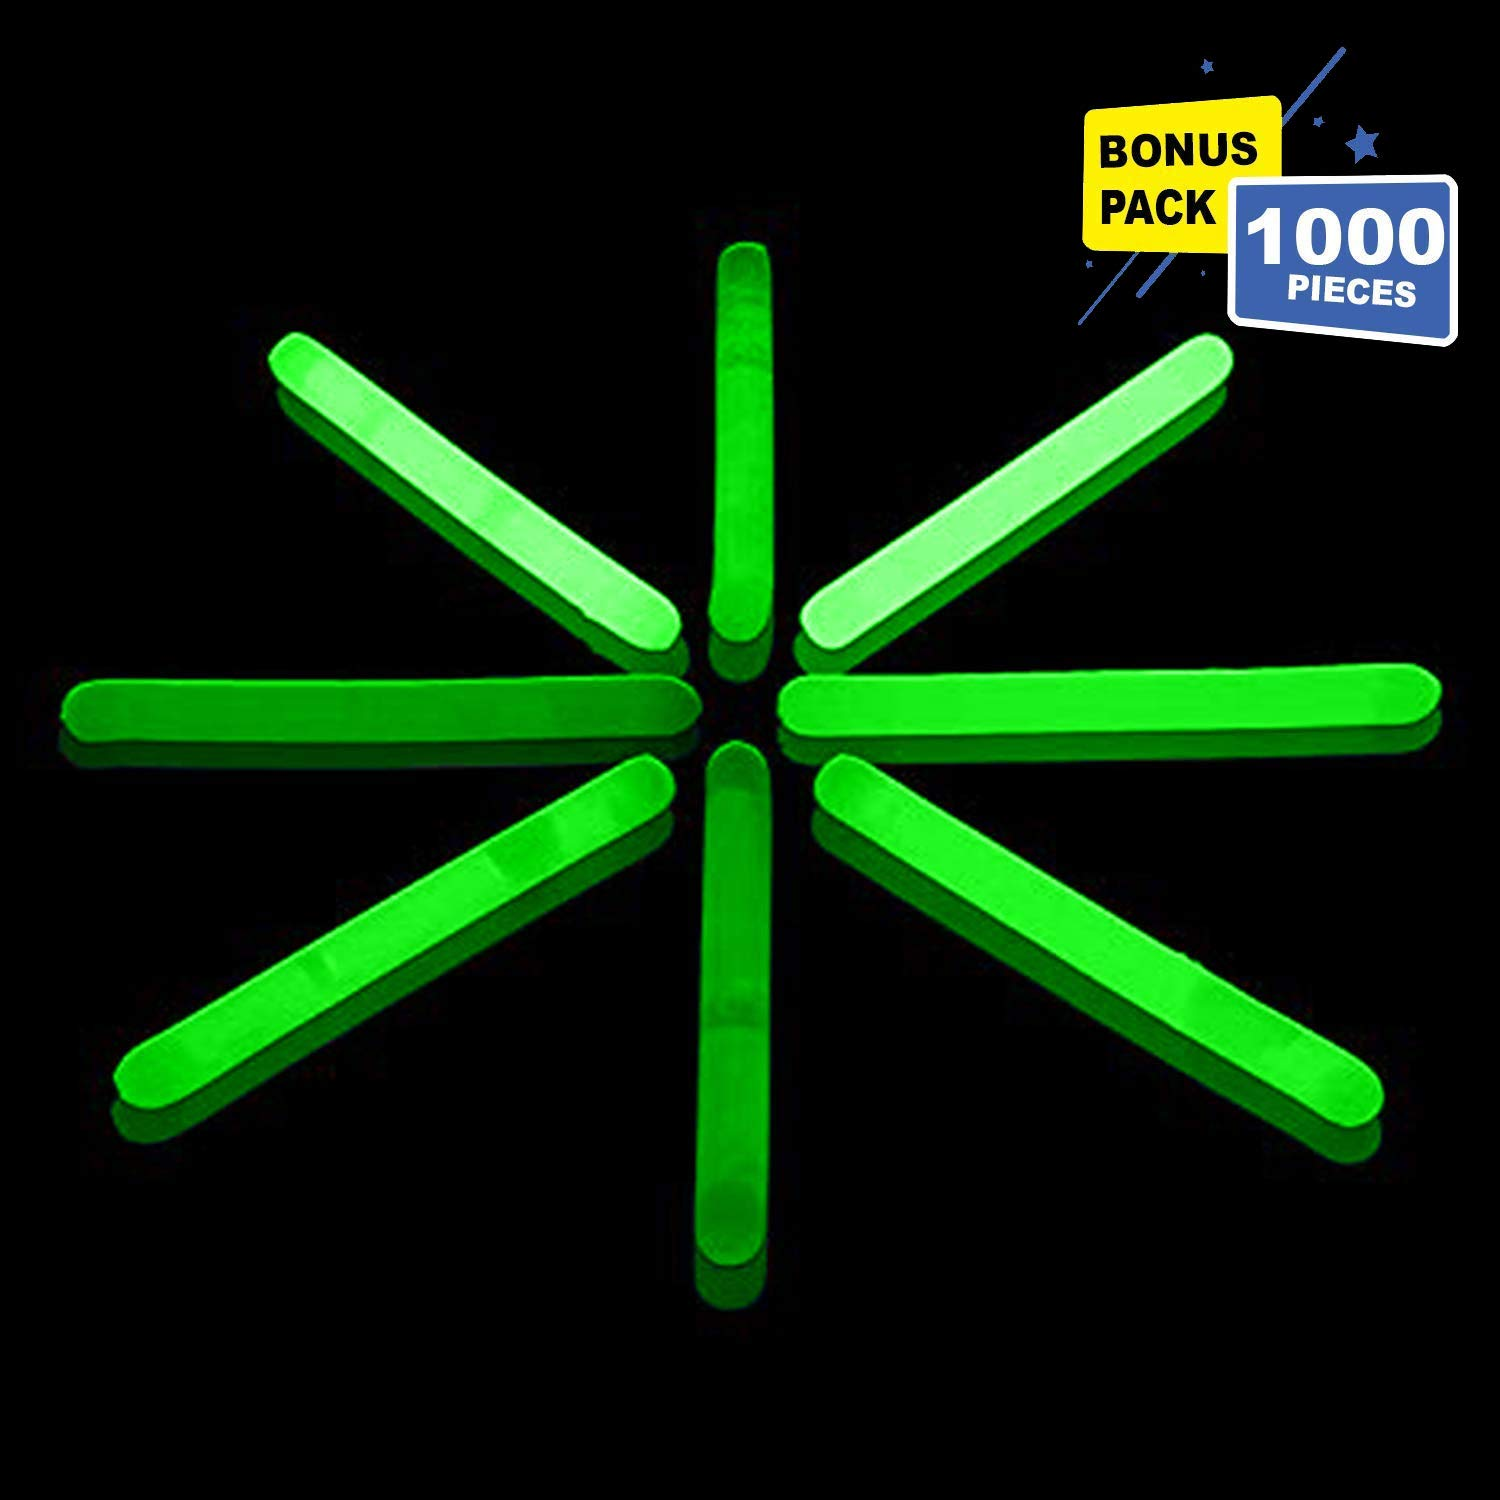 Lumistick 1.5 Inch Fishing Glow Sticks   Bright Color Snap Lights Glowsticks   Neon Mini Light for Swimming   Glow in The Dark Camping Night Party Favor Supplies (Green, 1000 Glow Sticks)